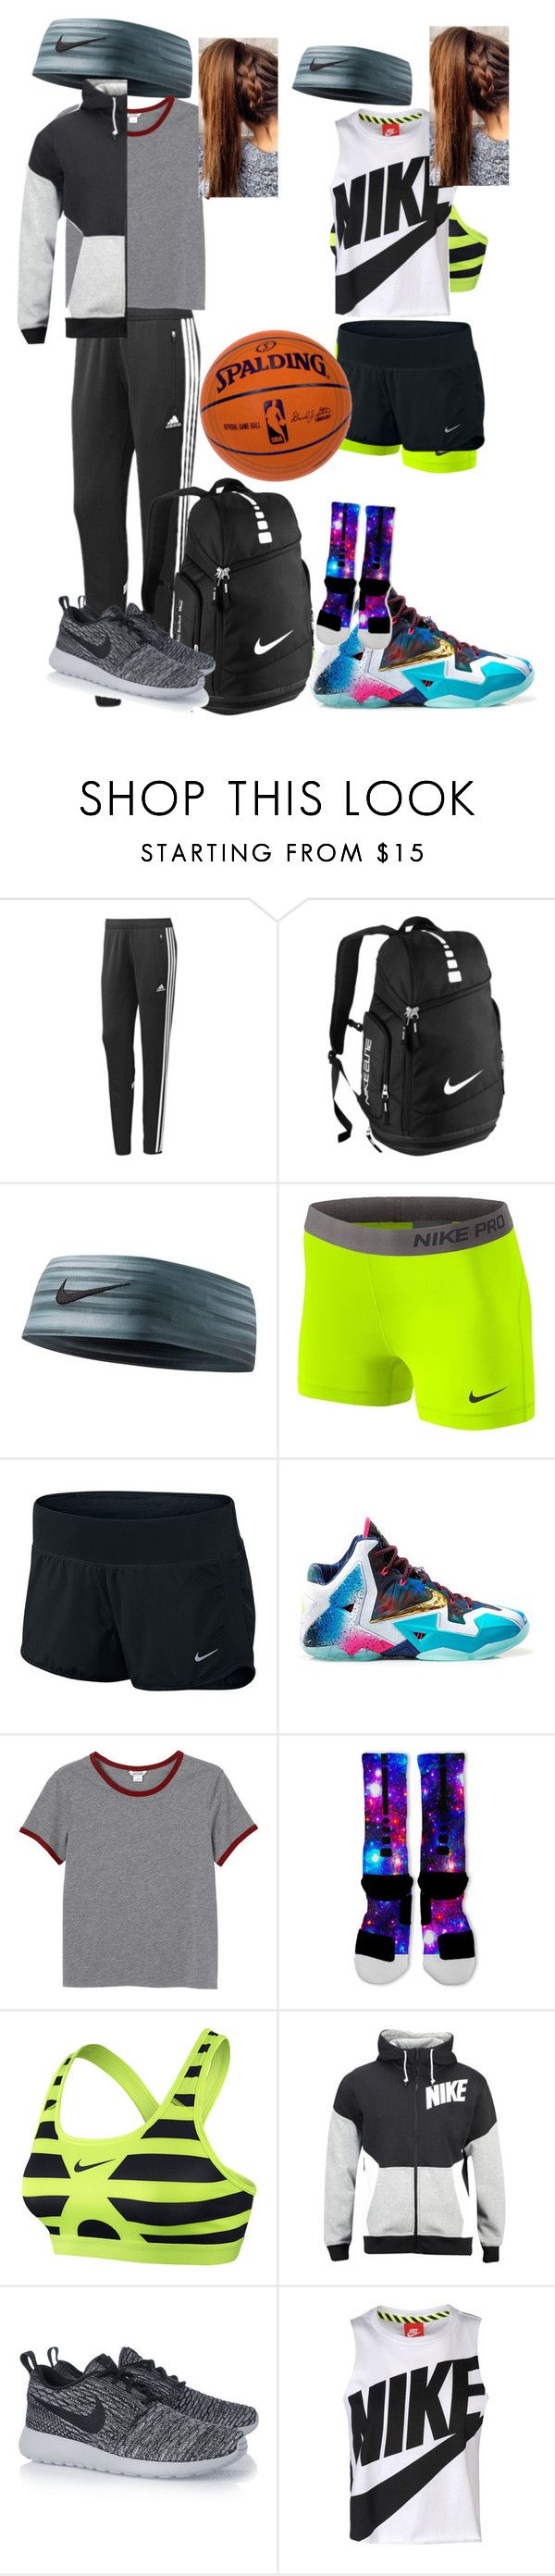 """""""OOTD 12/2/15 Basketball Practice After School"""" by kirstinv1226 ❤ liked on Polyvore featuring moda, adidas, NIKE i Monki"""